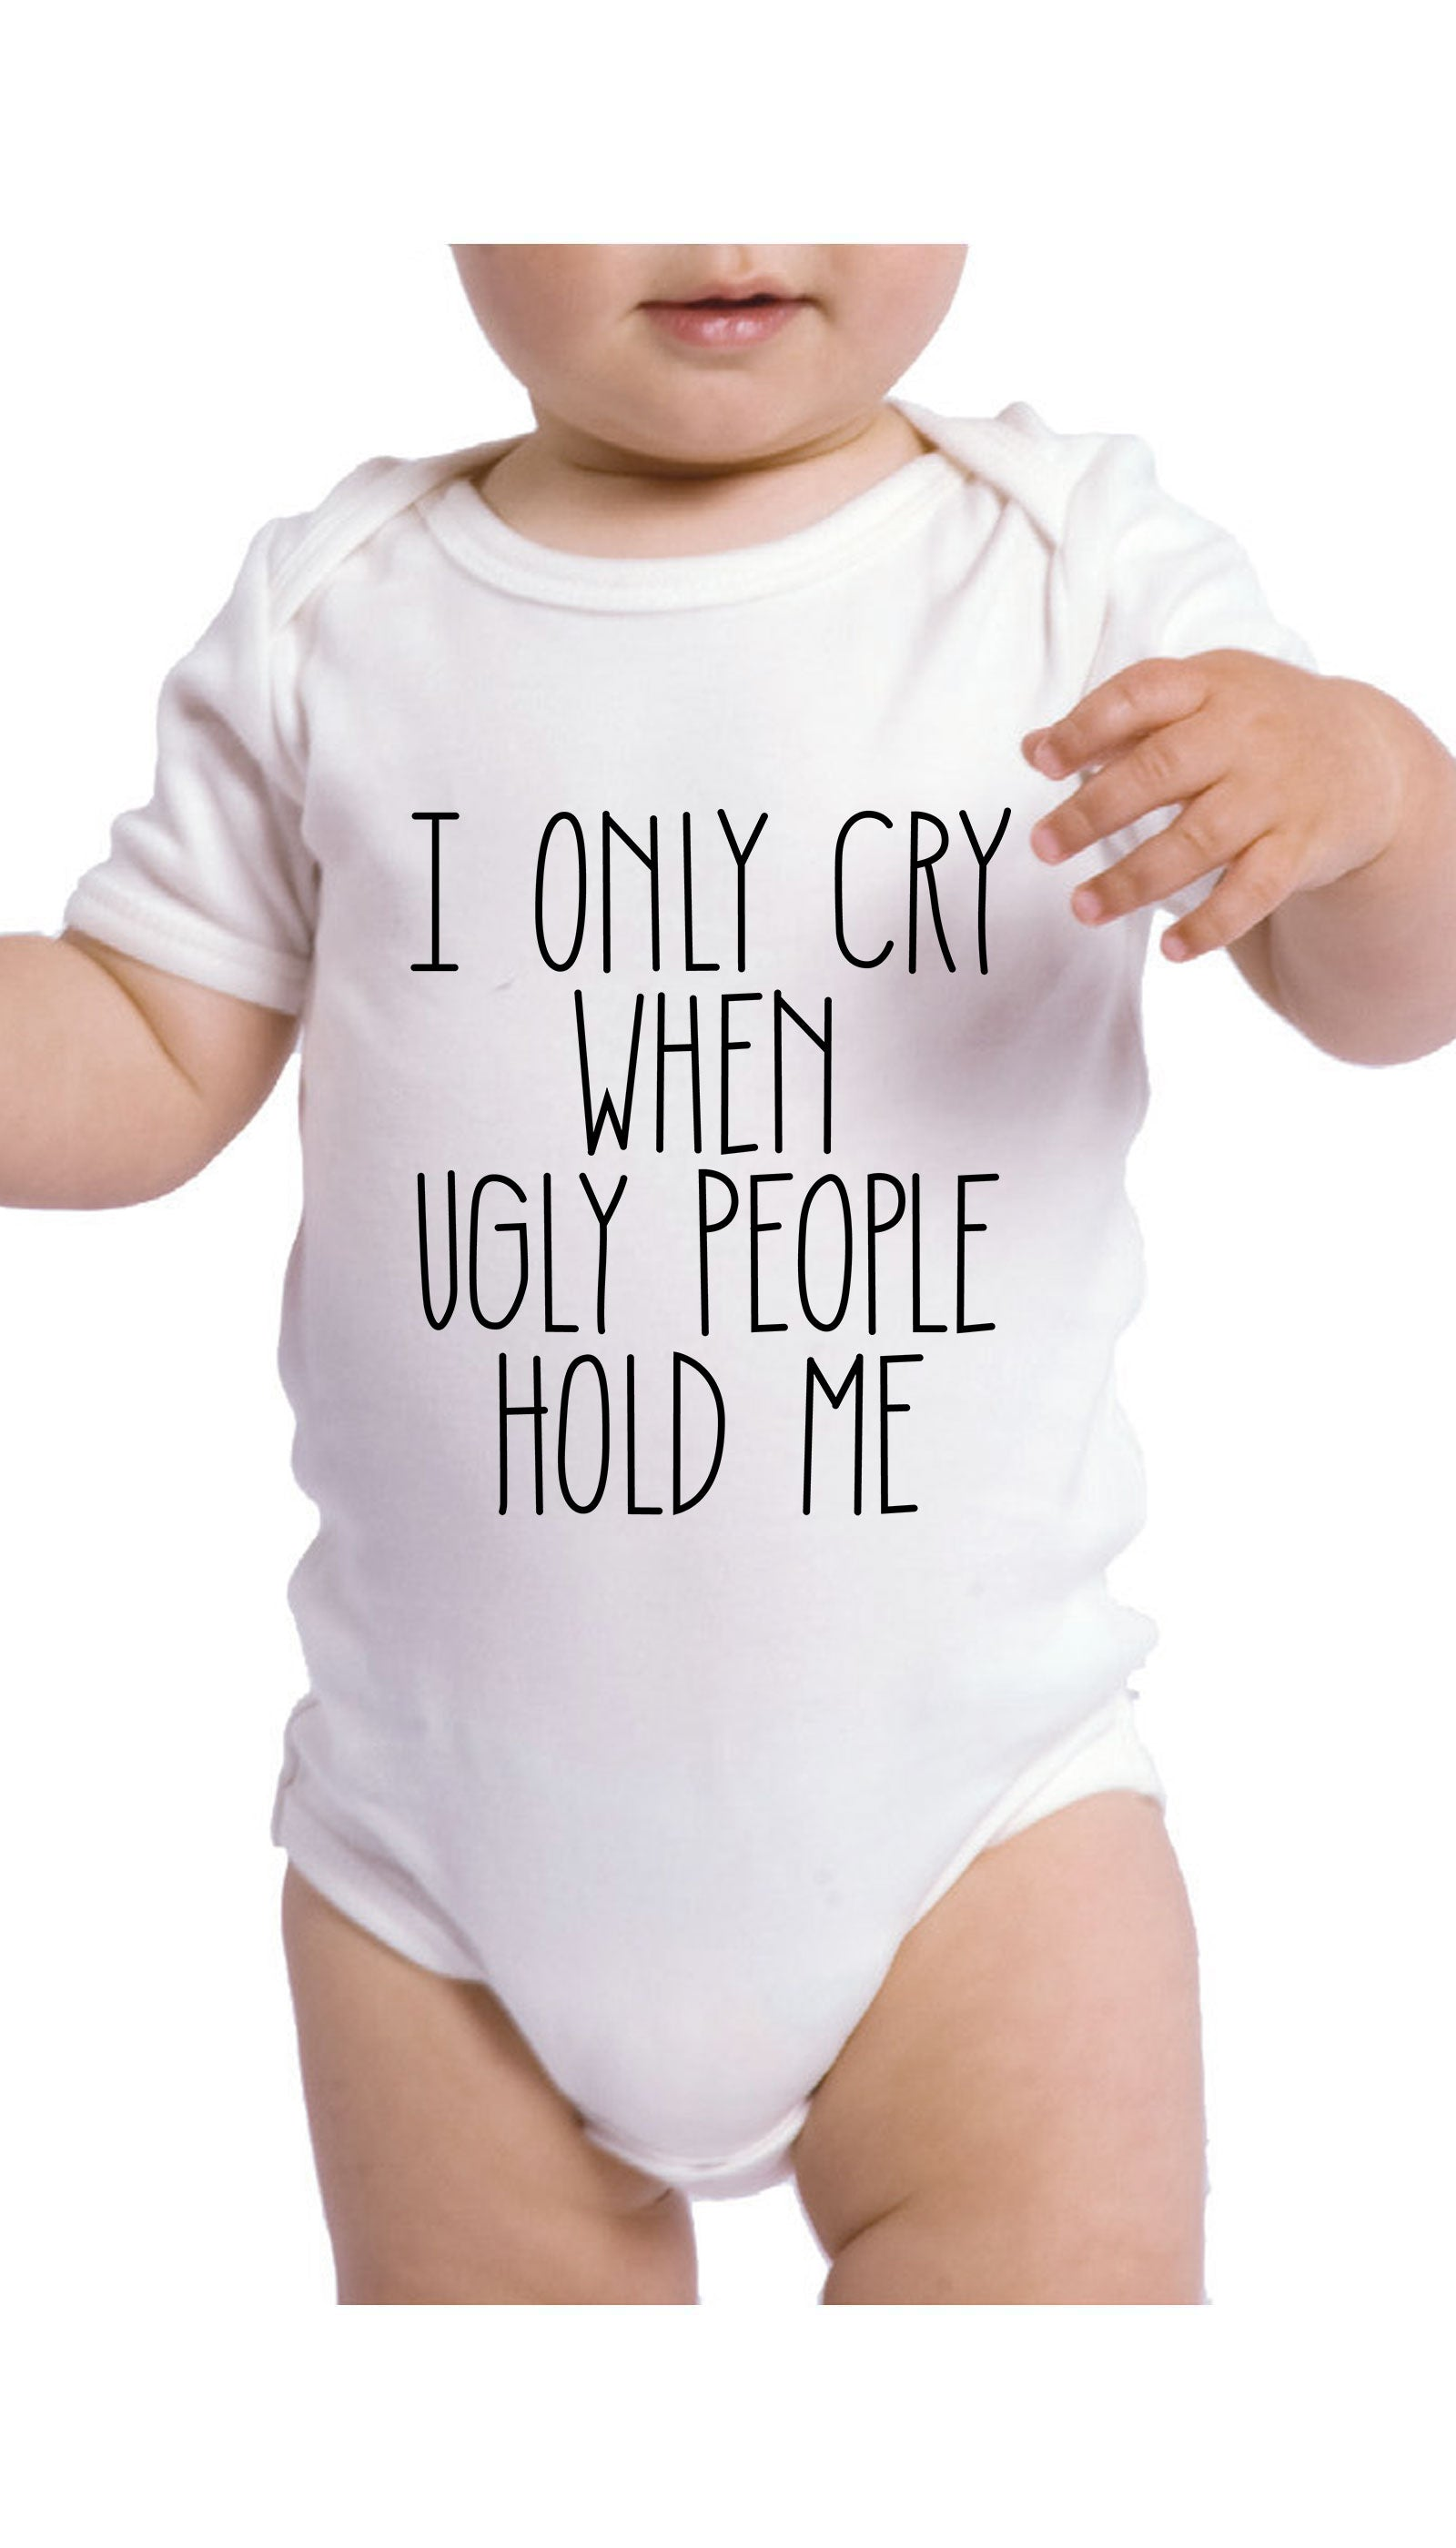 I Only Cry When Ugly People Hold Me Funny & Clever Baby Infant Onesie Gift | Sarcastic ME